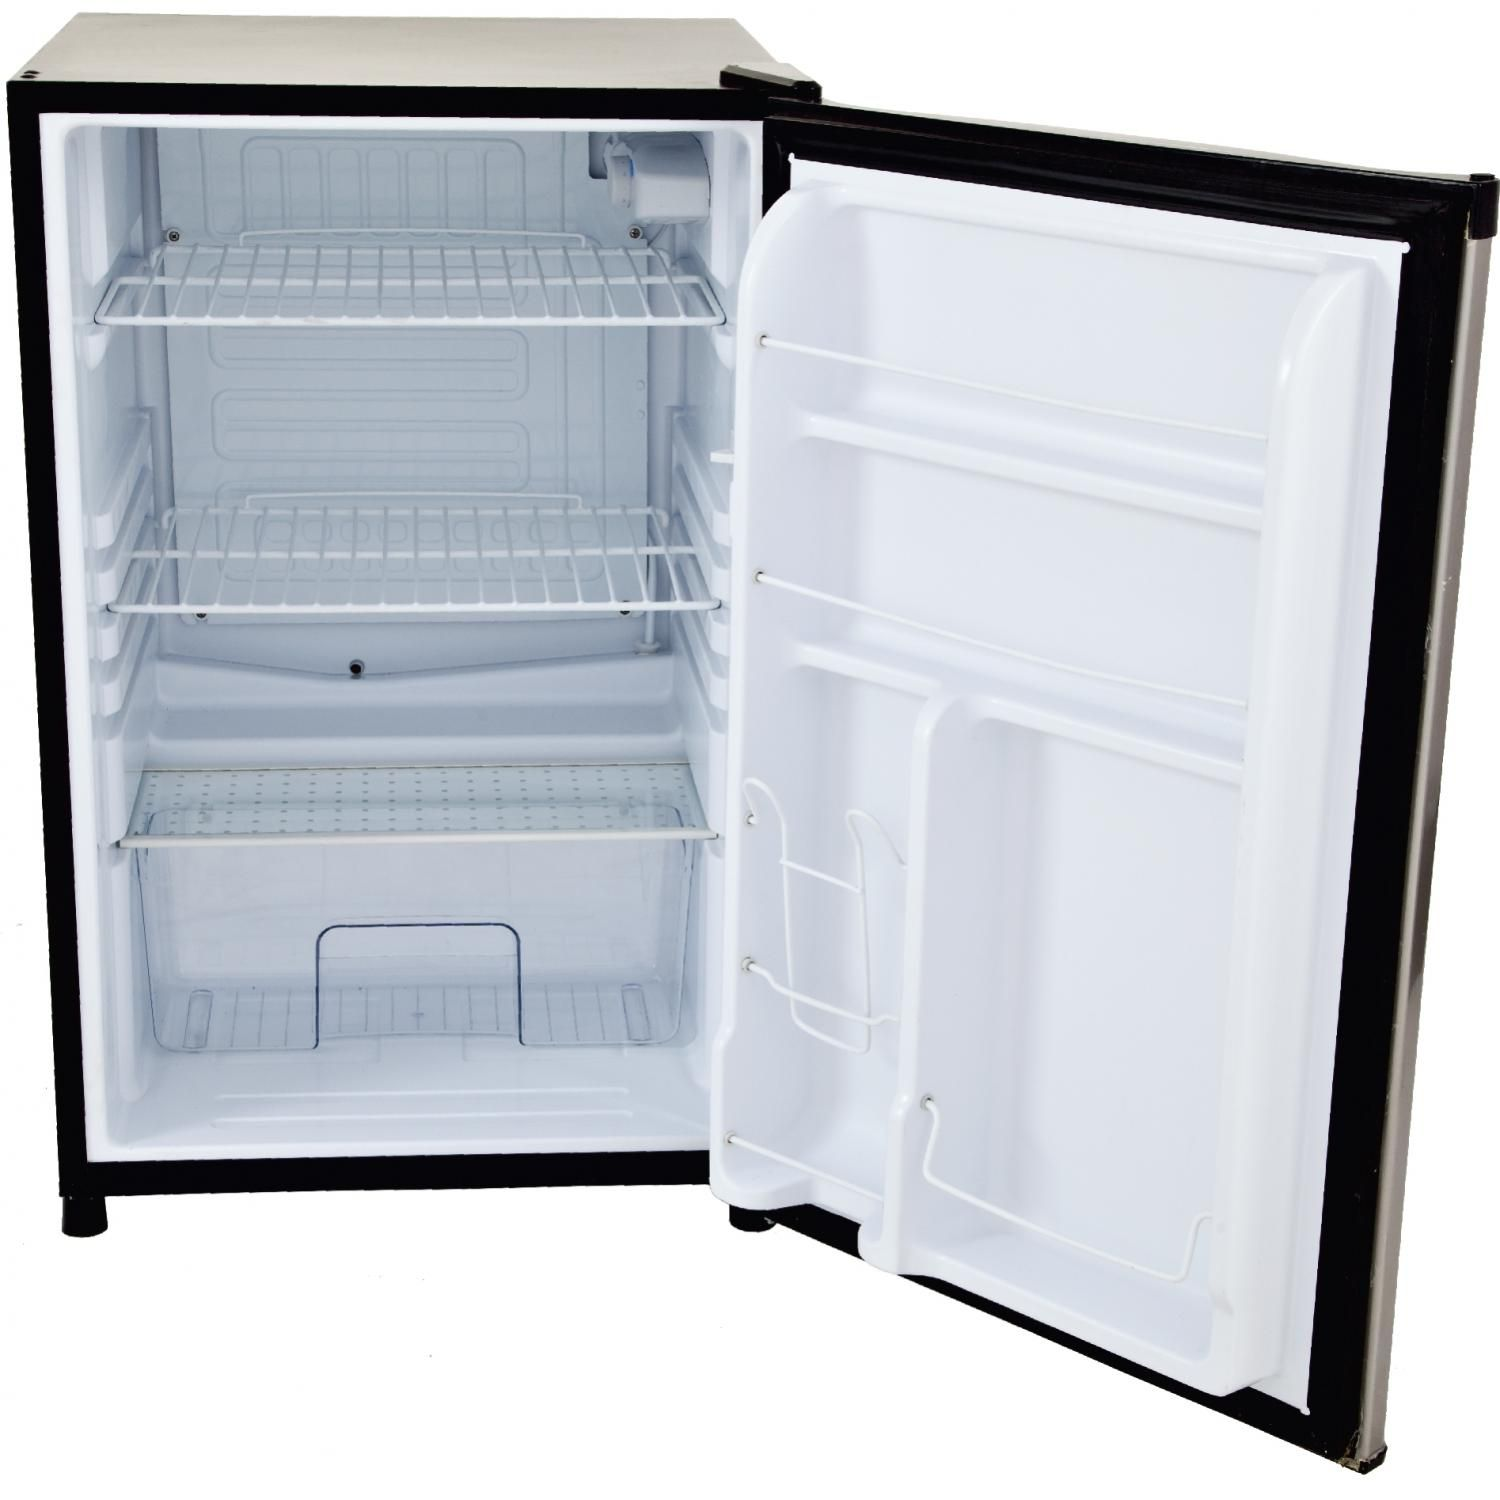 Lion 20-Inch 4.5 Cu. Ft. Compact Refrigerator With Recessed Handle ...